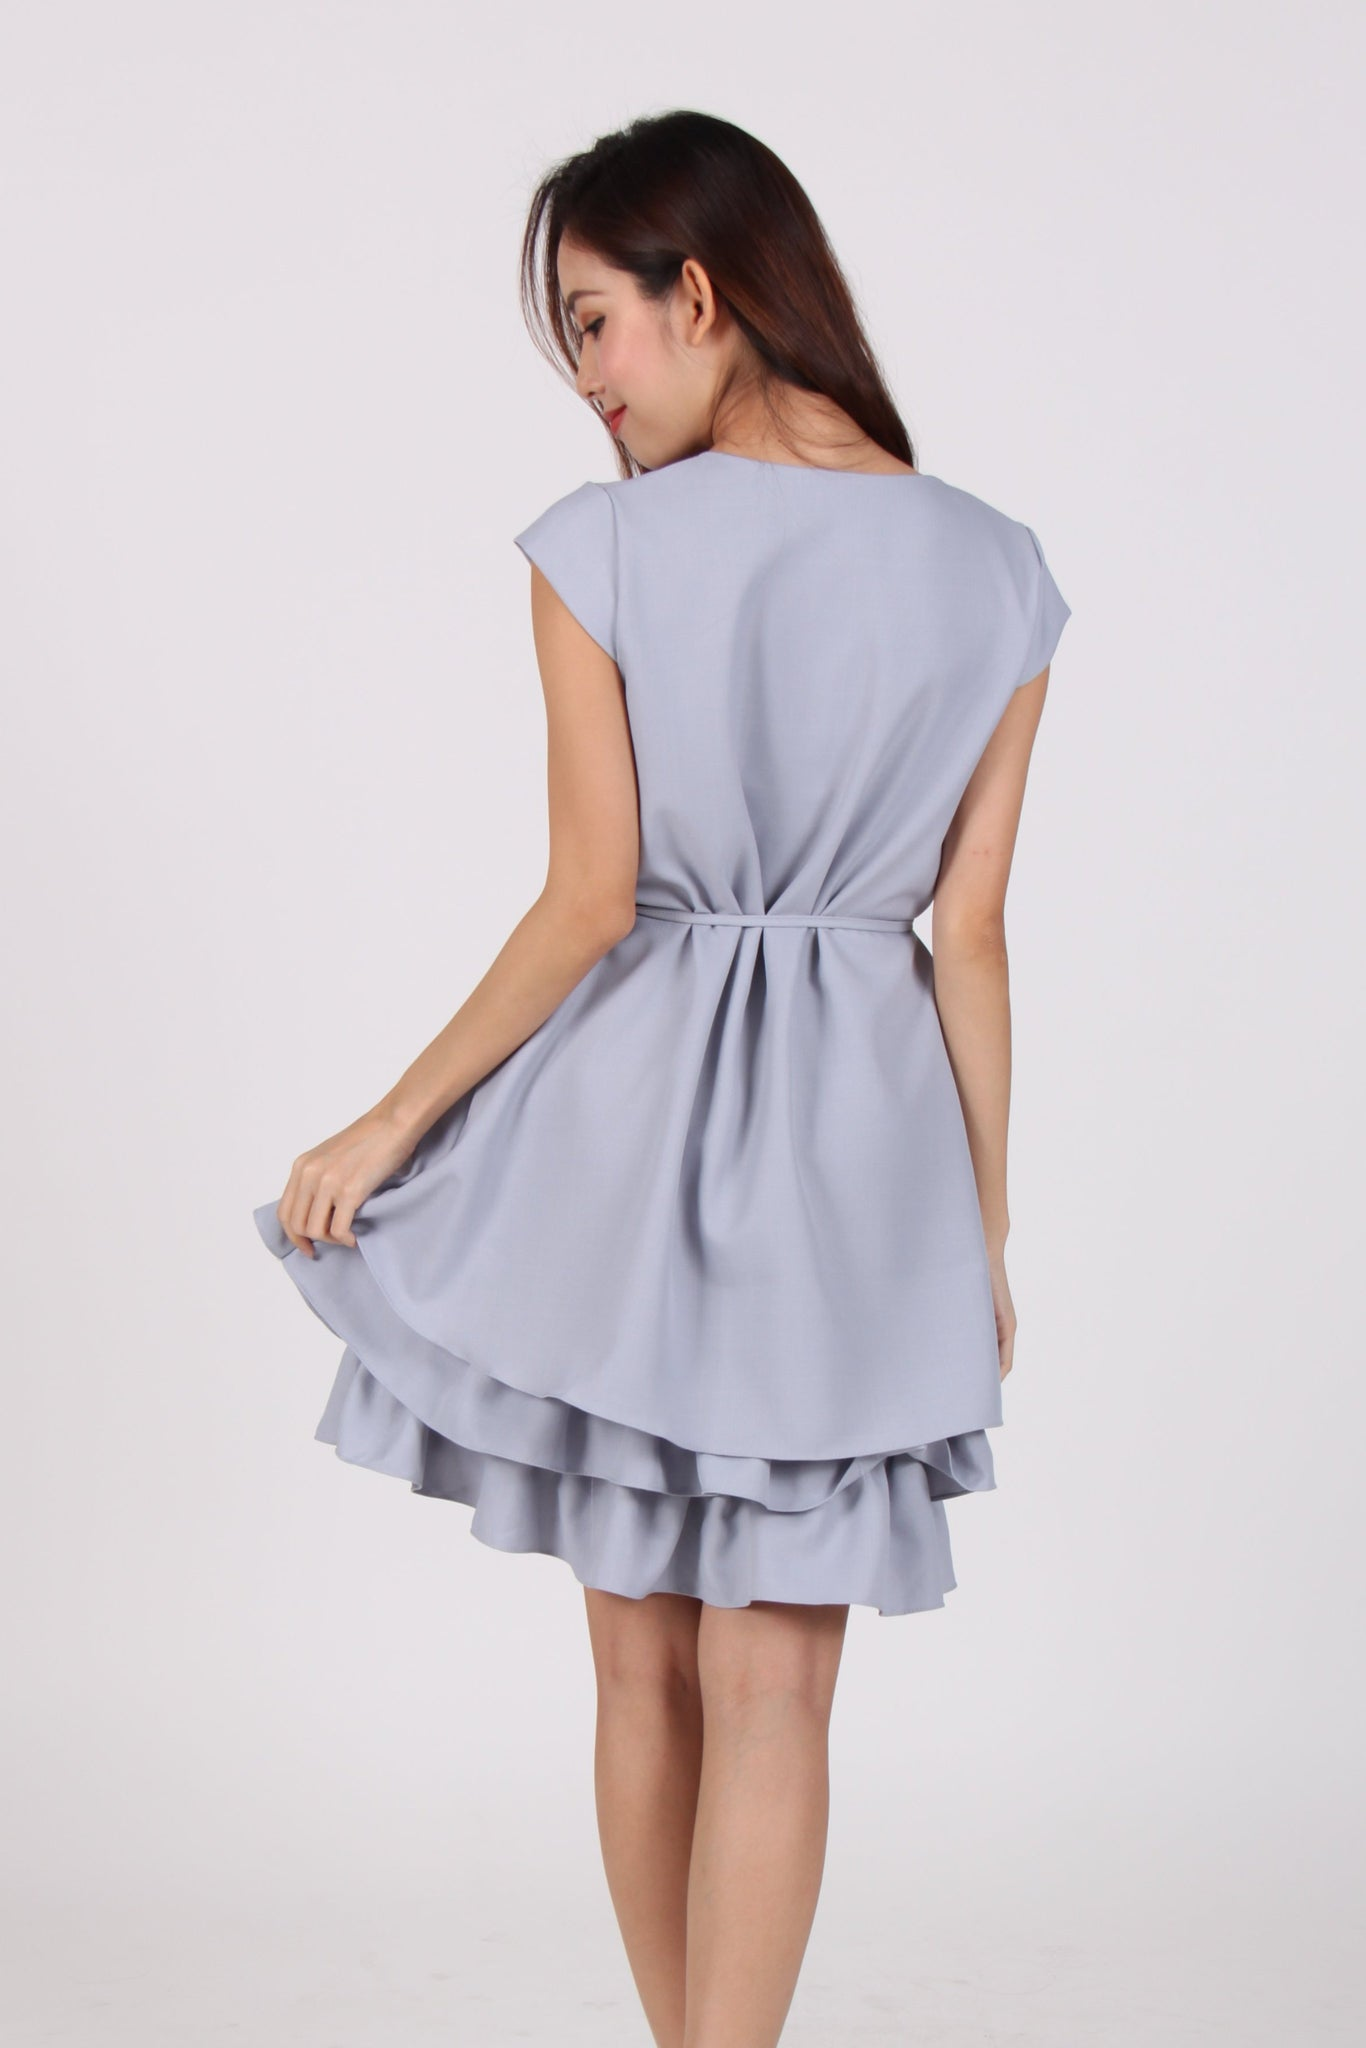 Cap Sleeve Layered Ruffles Dress in Light Blue